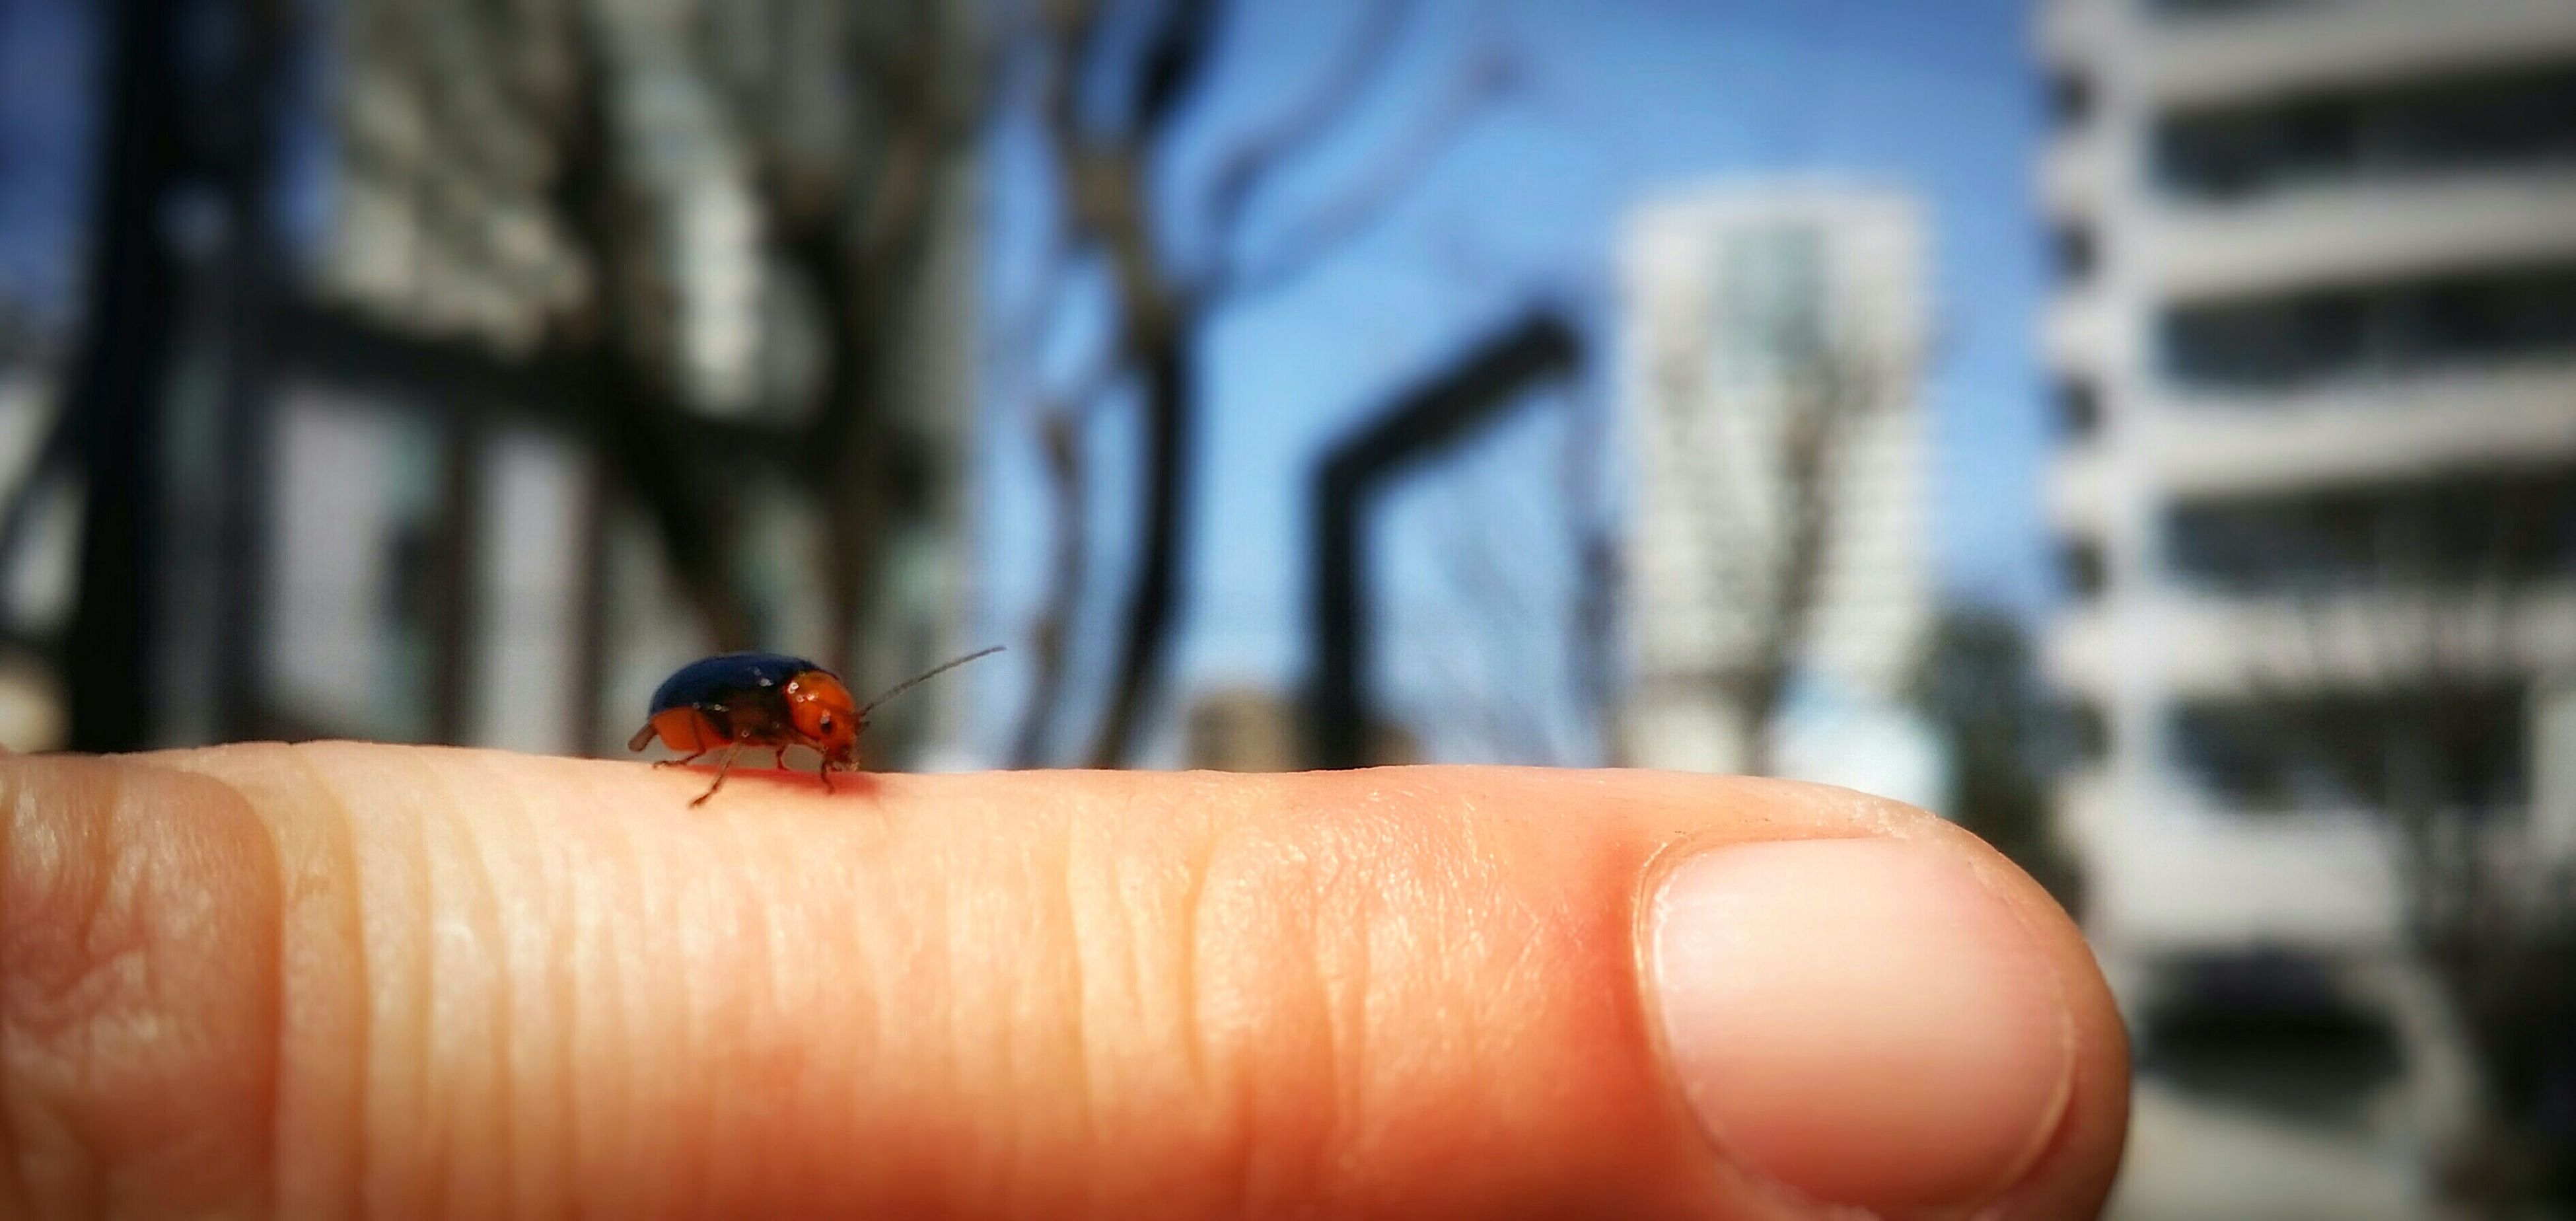 person, insect, animal themes, one animal, animals in the wild, wildlife, human finger, holding, focus on foreground, part of, close-up, unrecognizable person, cropped, personal perspective, ladybug, lifestyles, selective focus